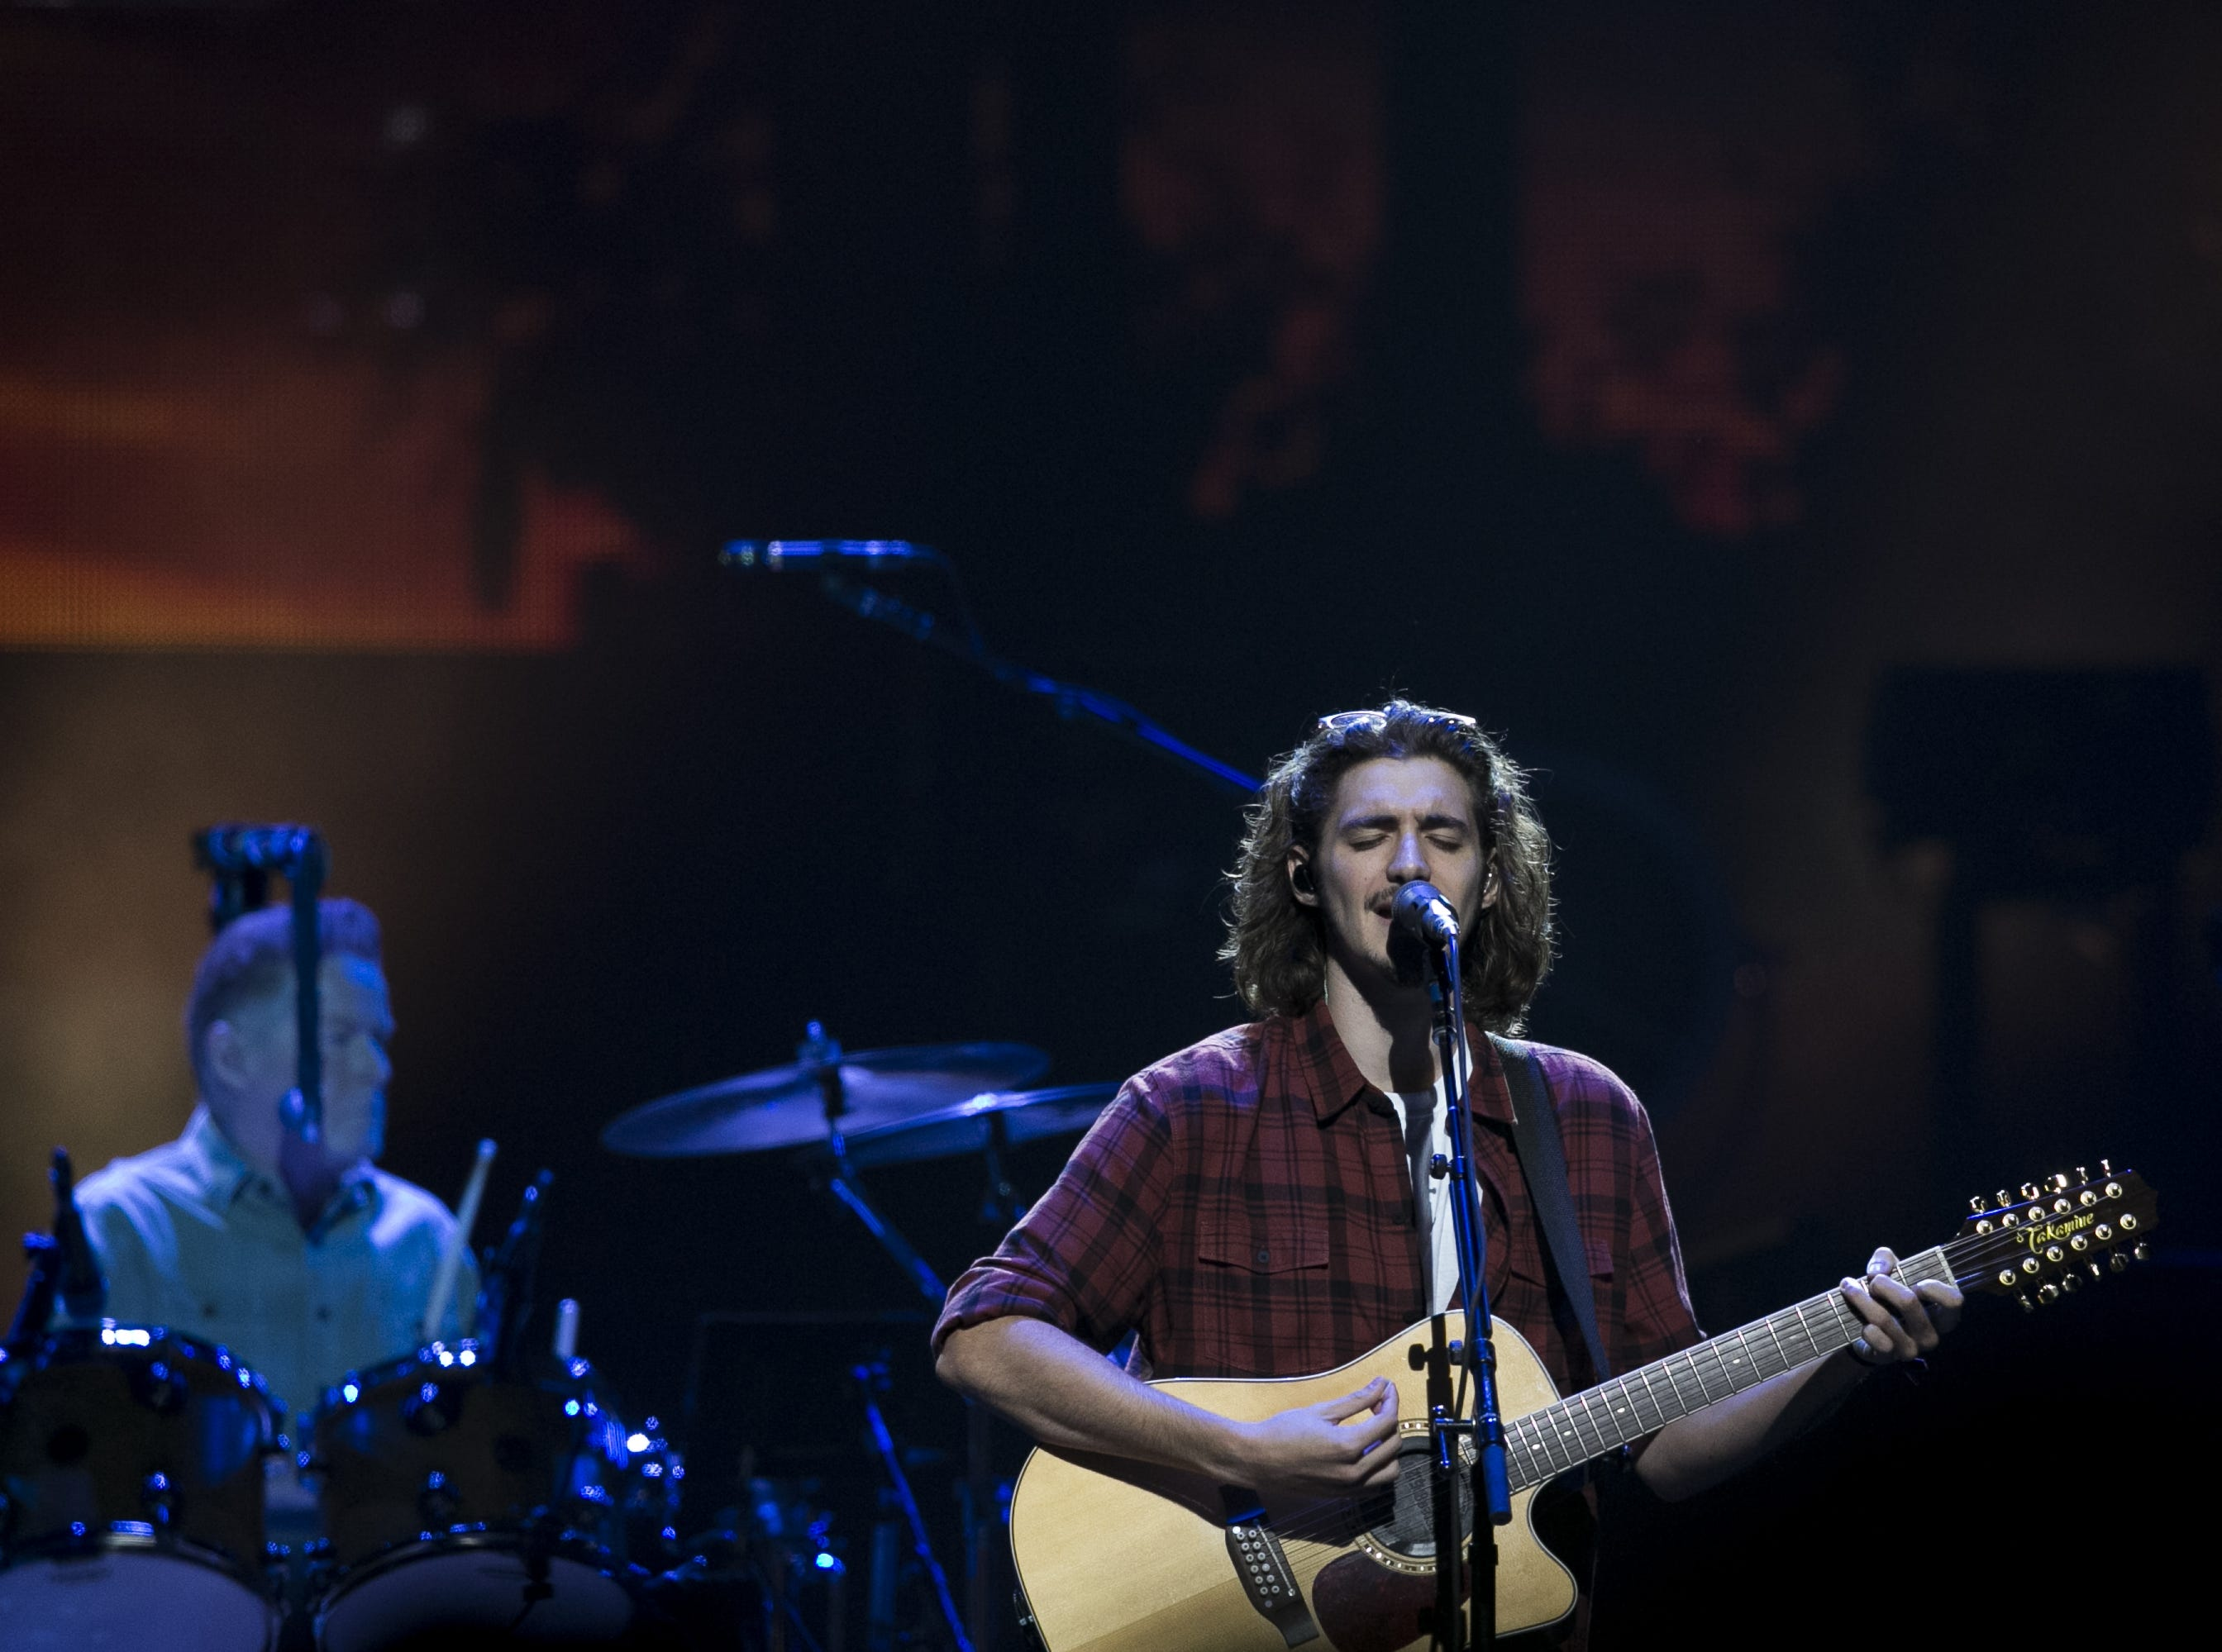 Deacon Frey, son of the late Glenn Frey, performs with the Eagles at Talking Stick Resort Arena in Phoenix on Sat. Sep. 8, 2018.